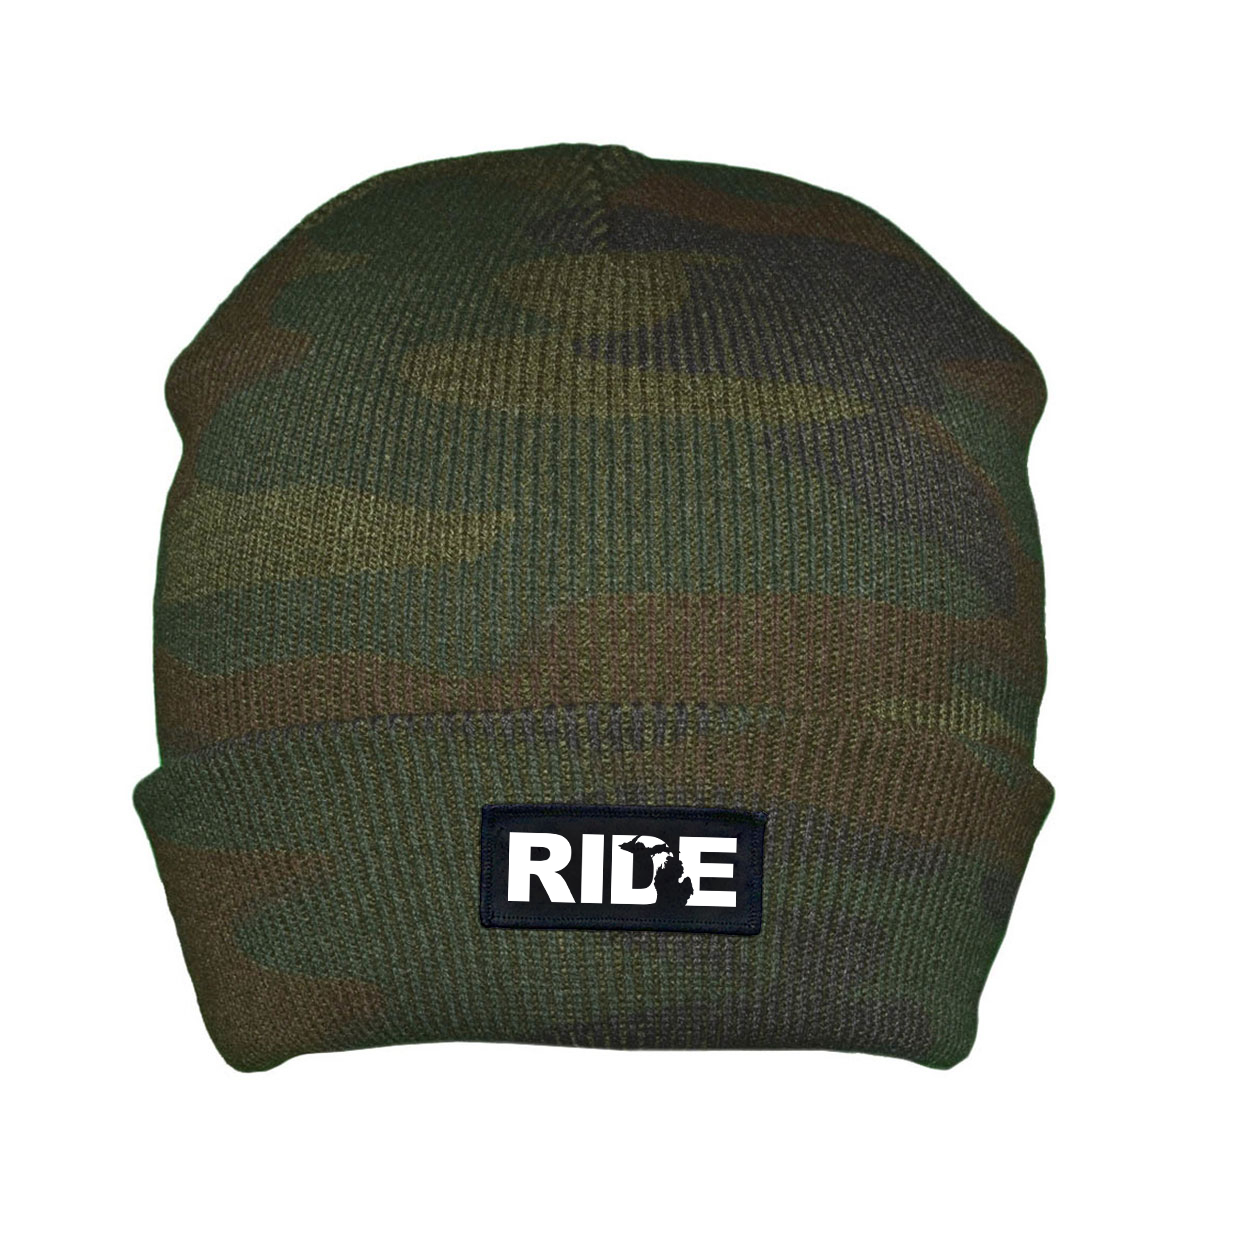 Ride Michigan Night Out Woven Patch Roll Up Skully Beanie Camo (White Logo)